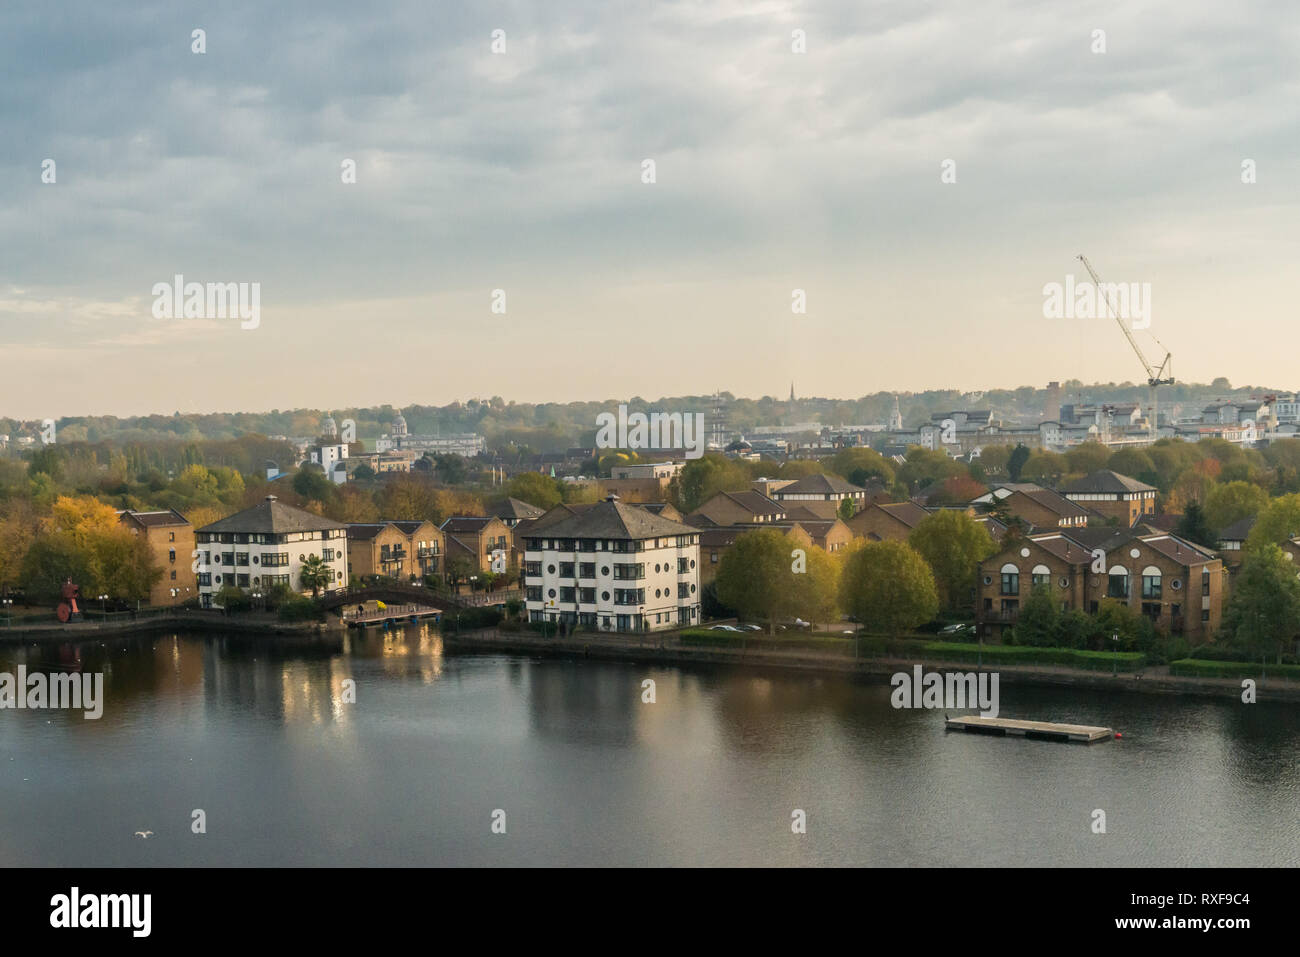 London, United Kingdom - November 07, 2018: View from Greenwich View Place towards Mudchute, Millwall Dock, and Greenwich park - Stock Image